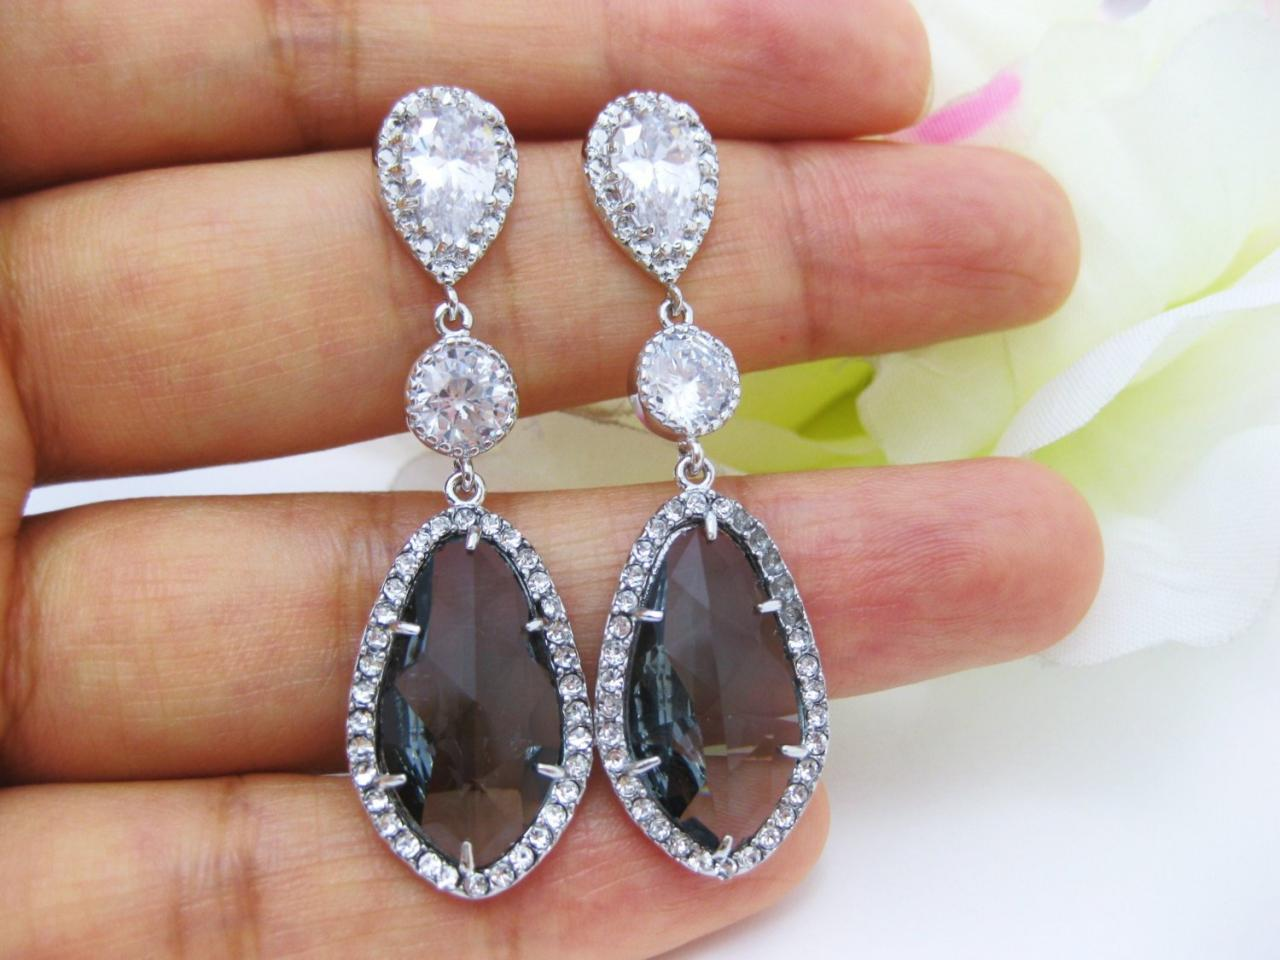 Dark Grey Bridal Earrings Charcoal Black Diamond Earrings Cubic Zirconia Teardrop Earrings Bridesmaid Gift Earrings (E055)